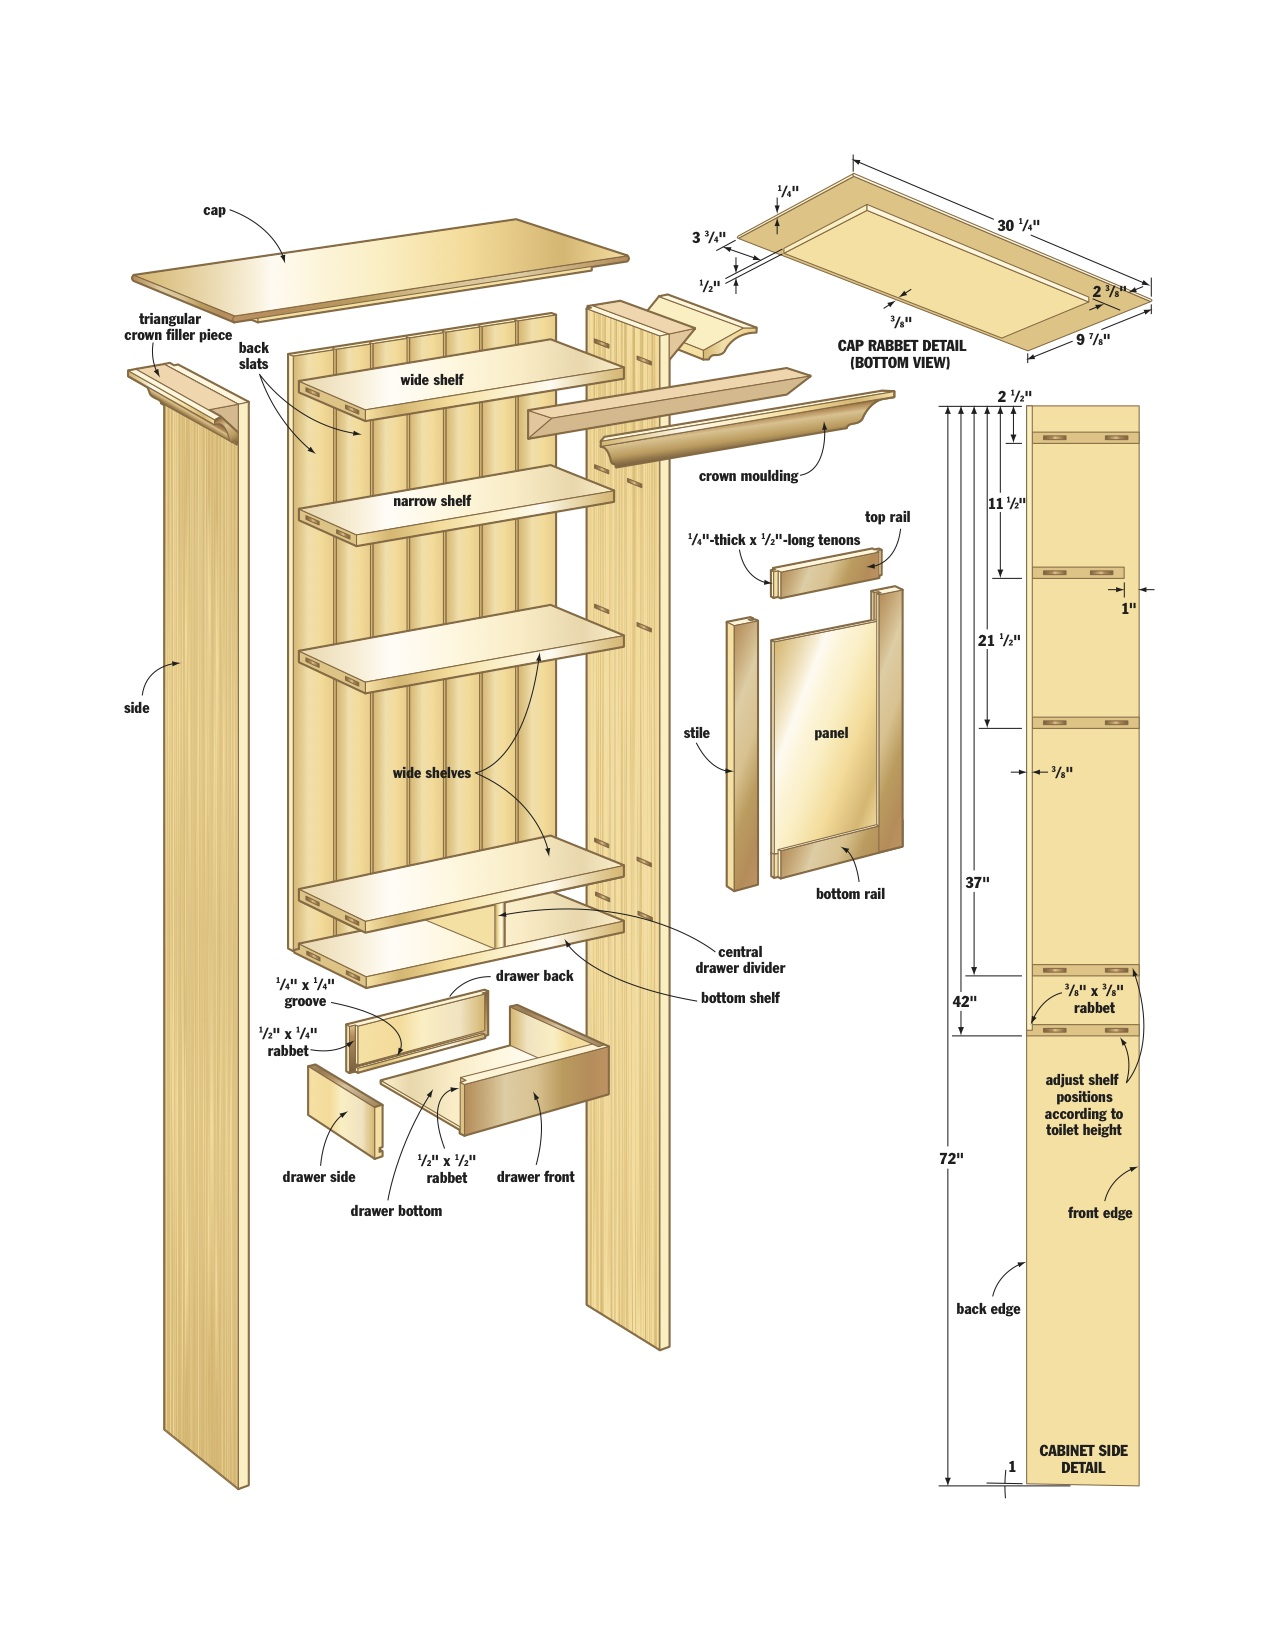 Bathroom wall cabinet woodworking plans - WoodShop Plans